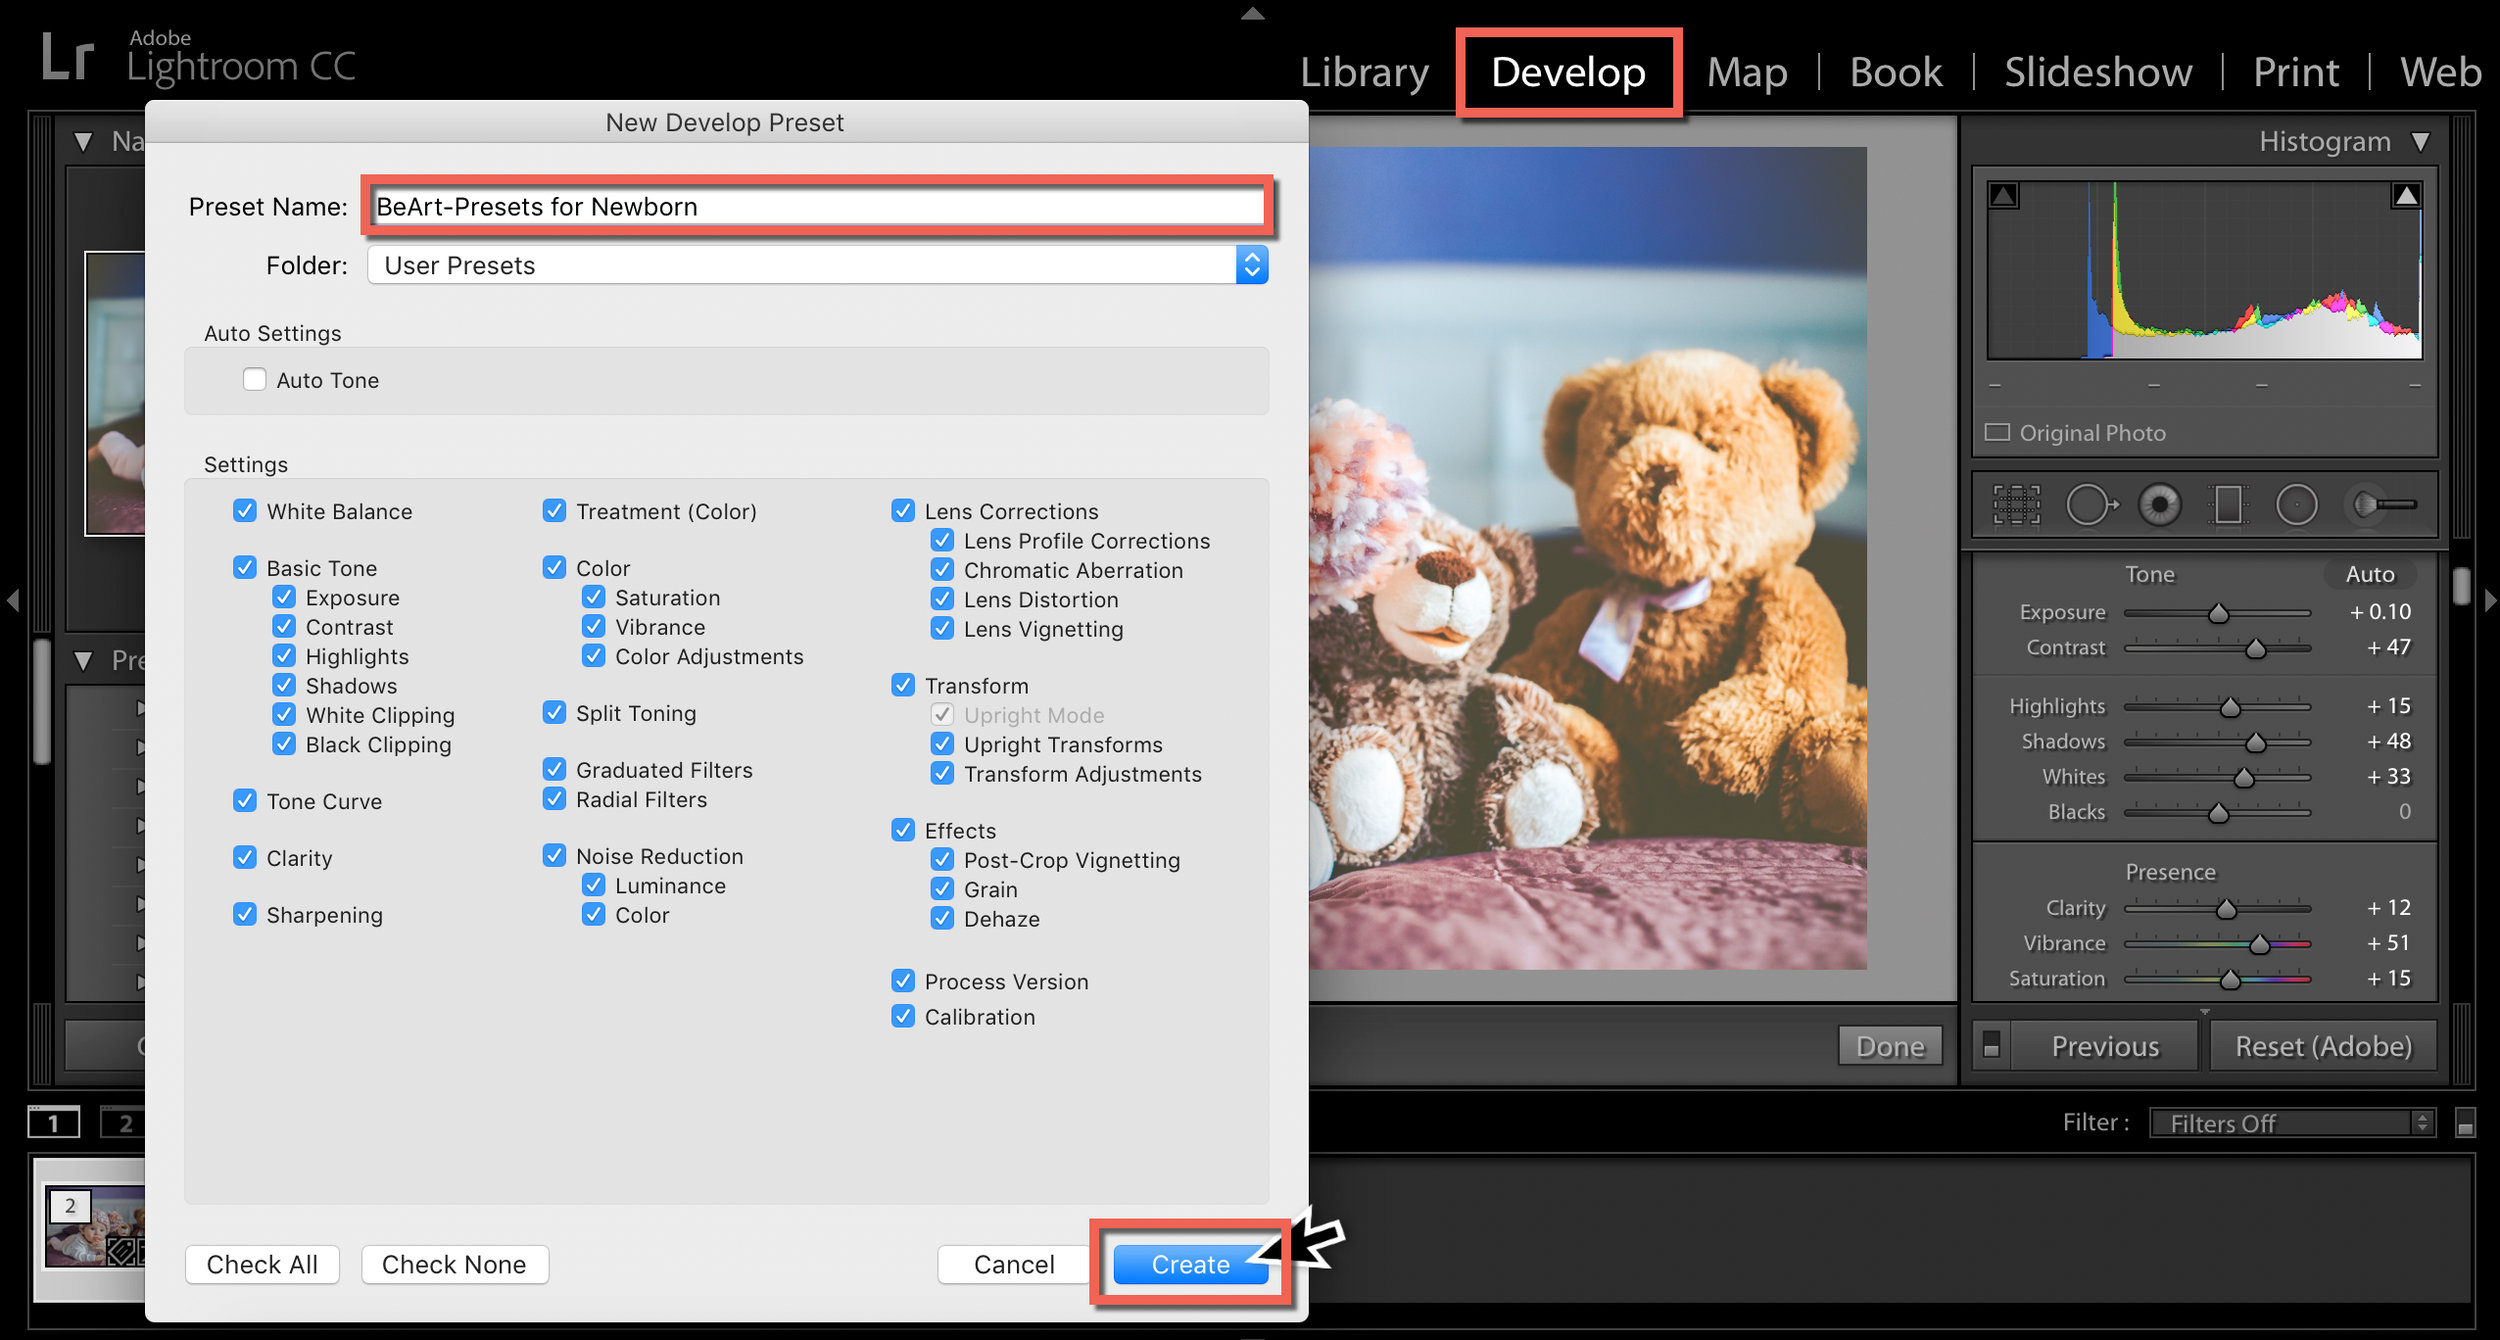 presets for lightroom by heart